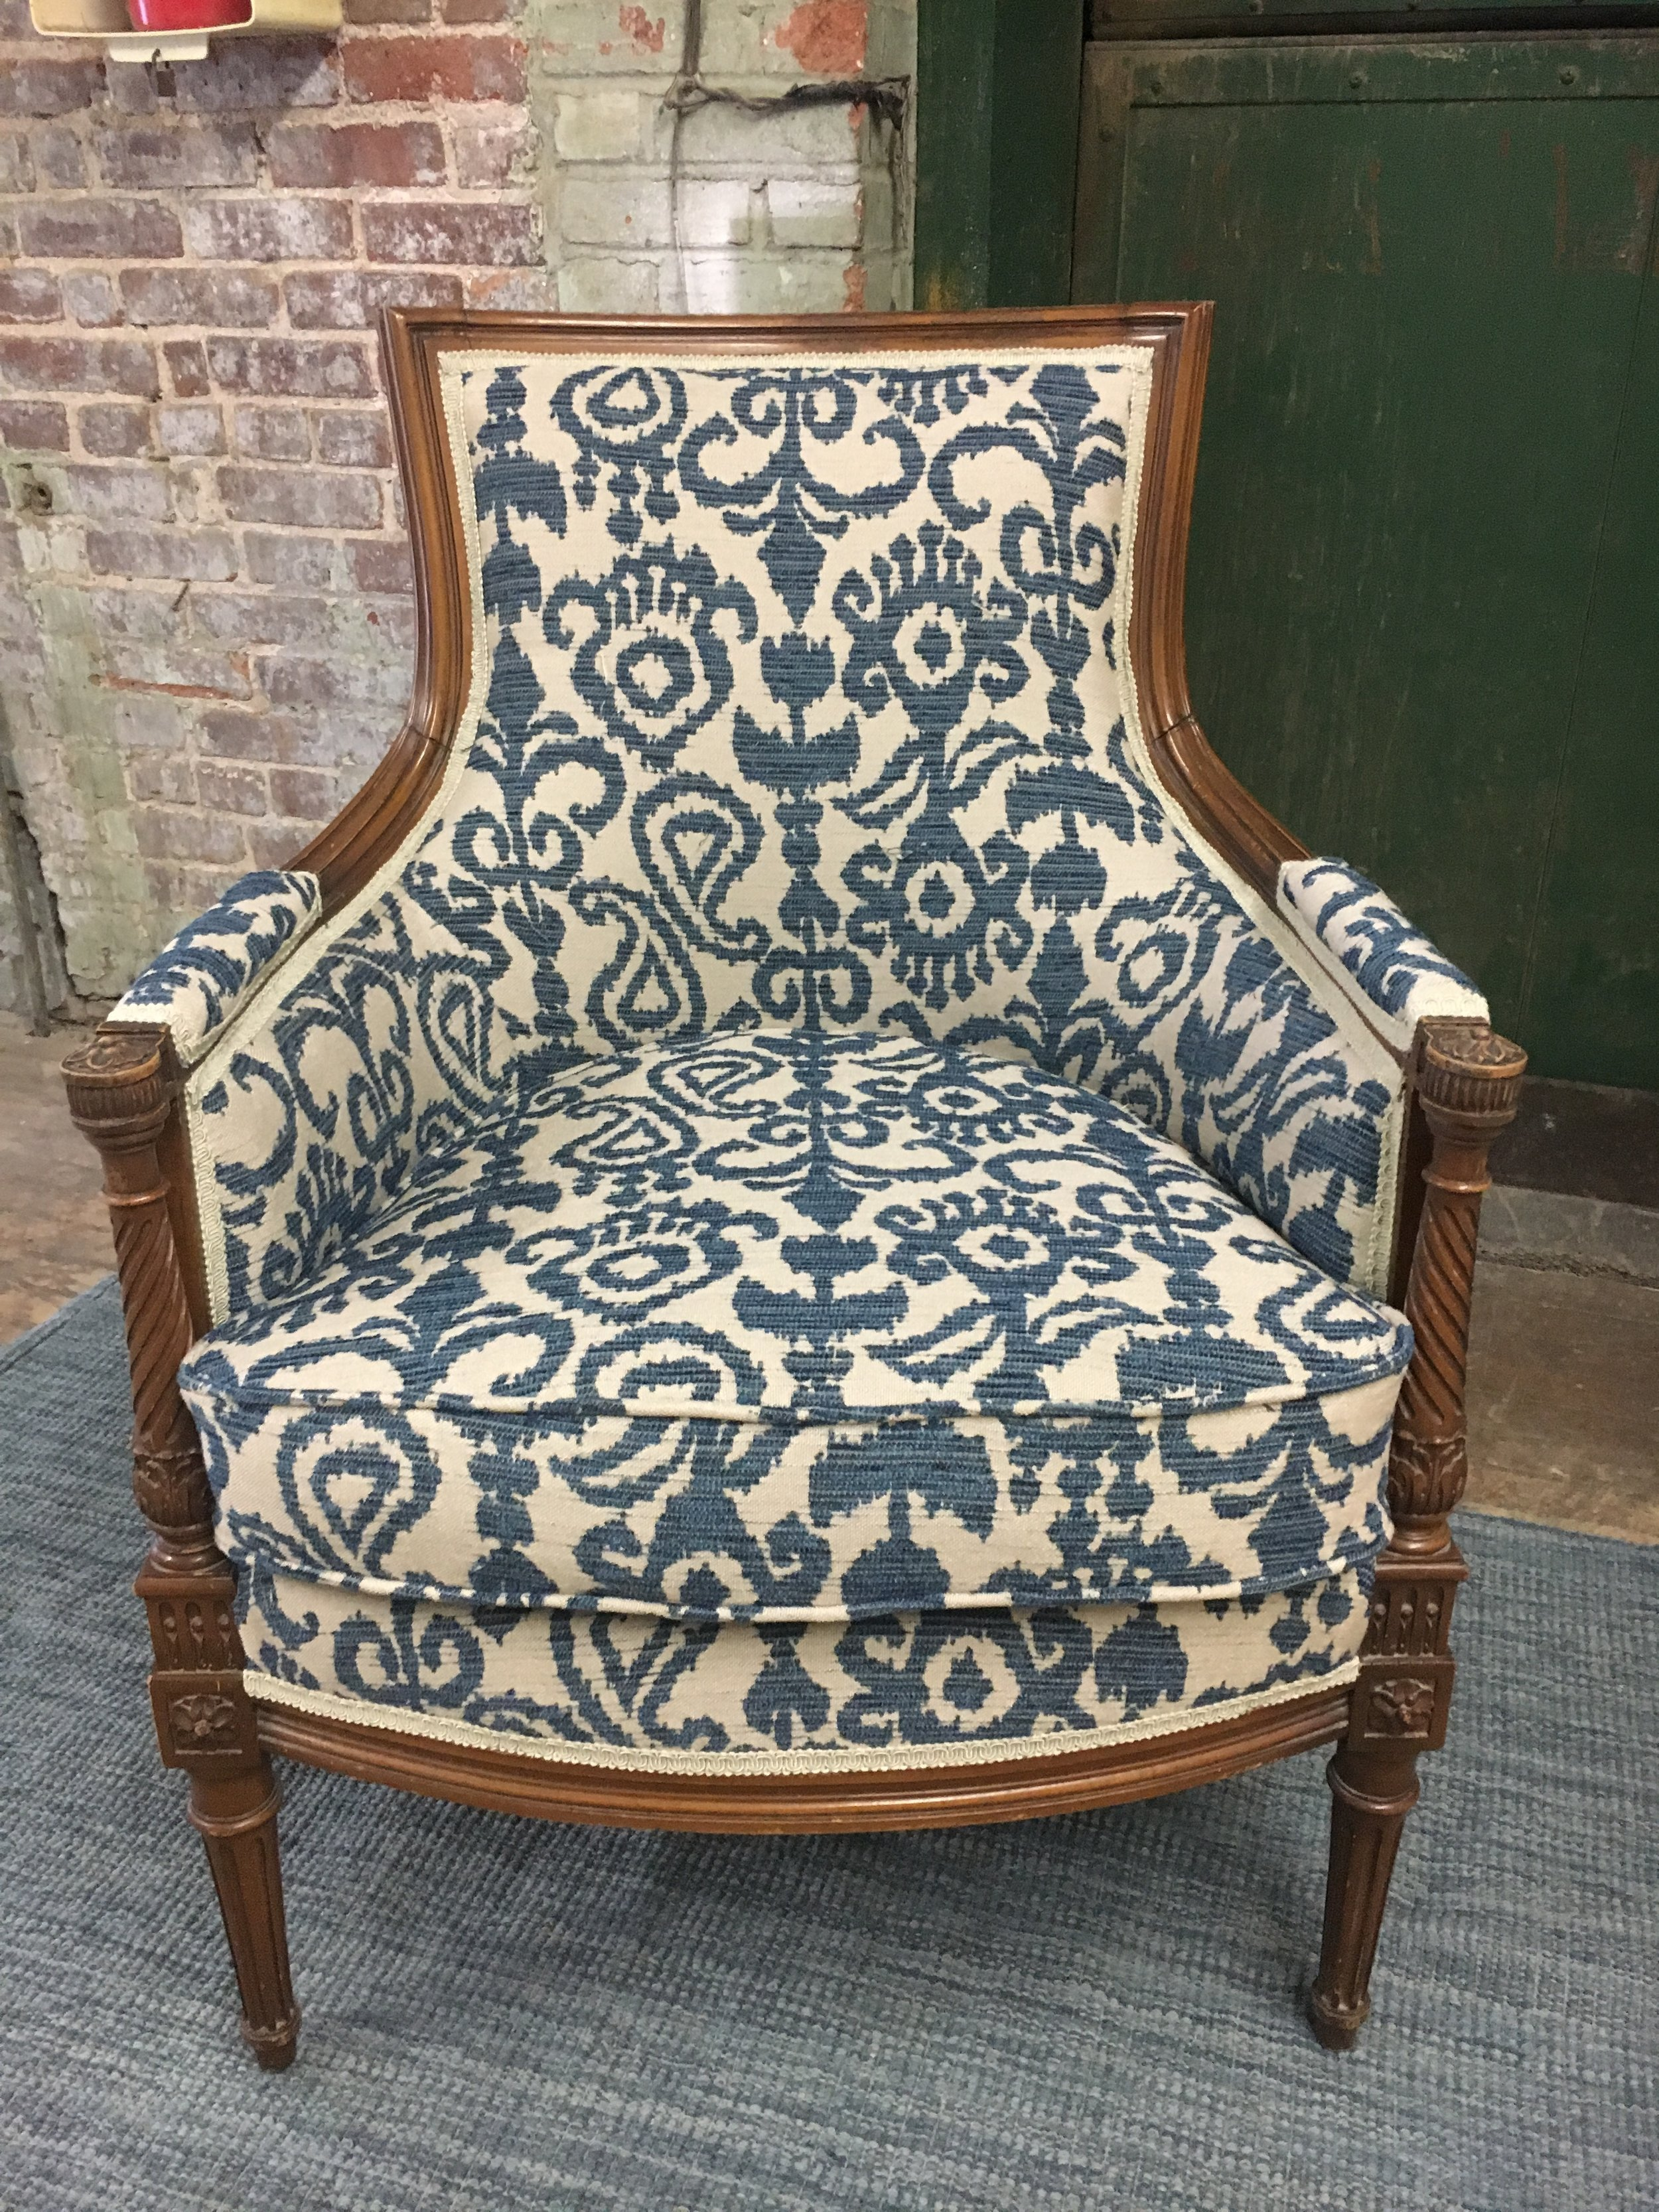 Refurbished Chairs Upholstered Chairs Benches Ottoman And More Refurbished With Love